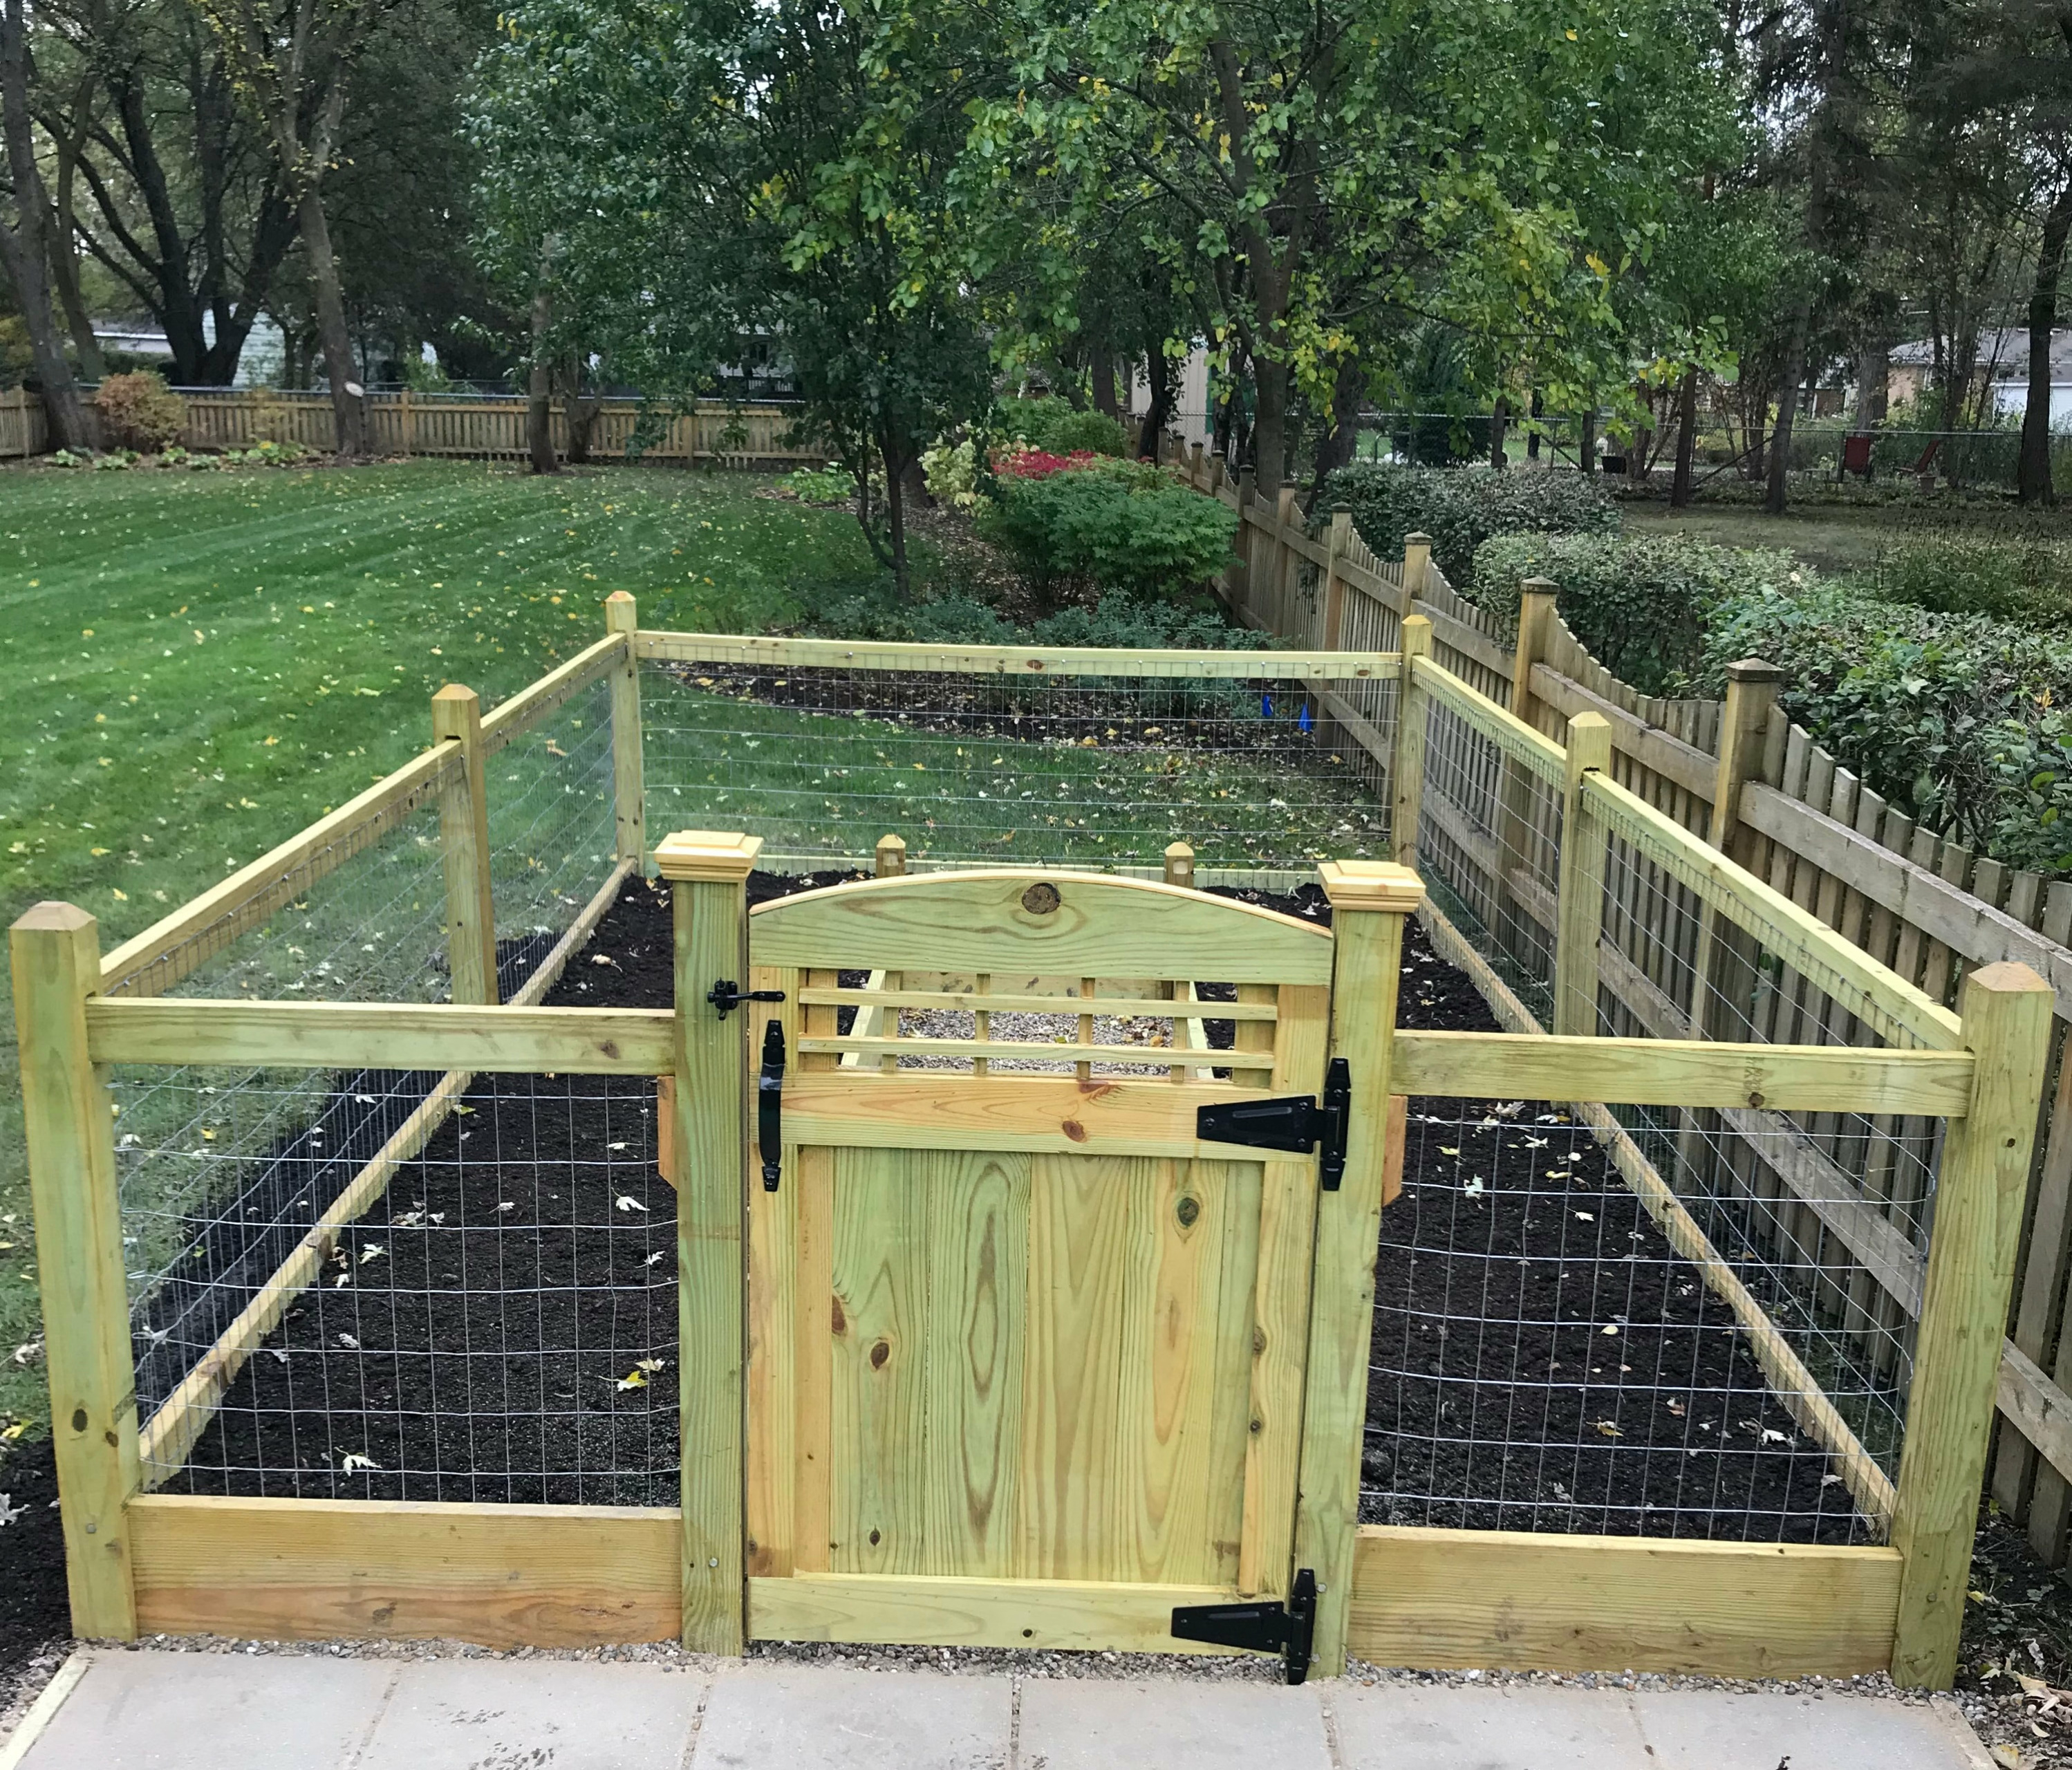 20 Raised Bed Garden Designs And Beautiful Backyard: 14x20x4 Foot Tall Gated Raised Garden Bed Treated Pine